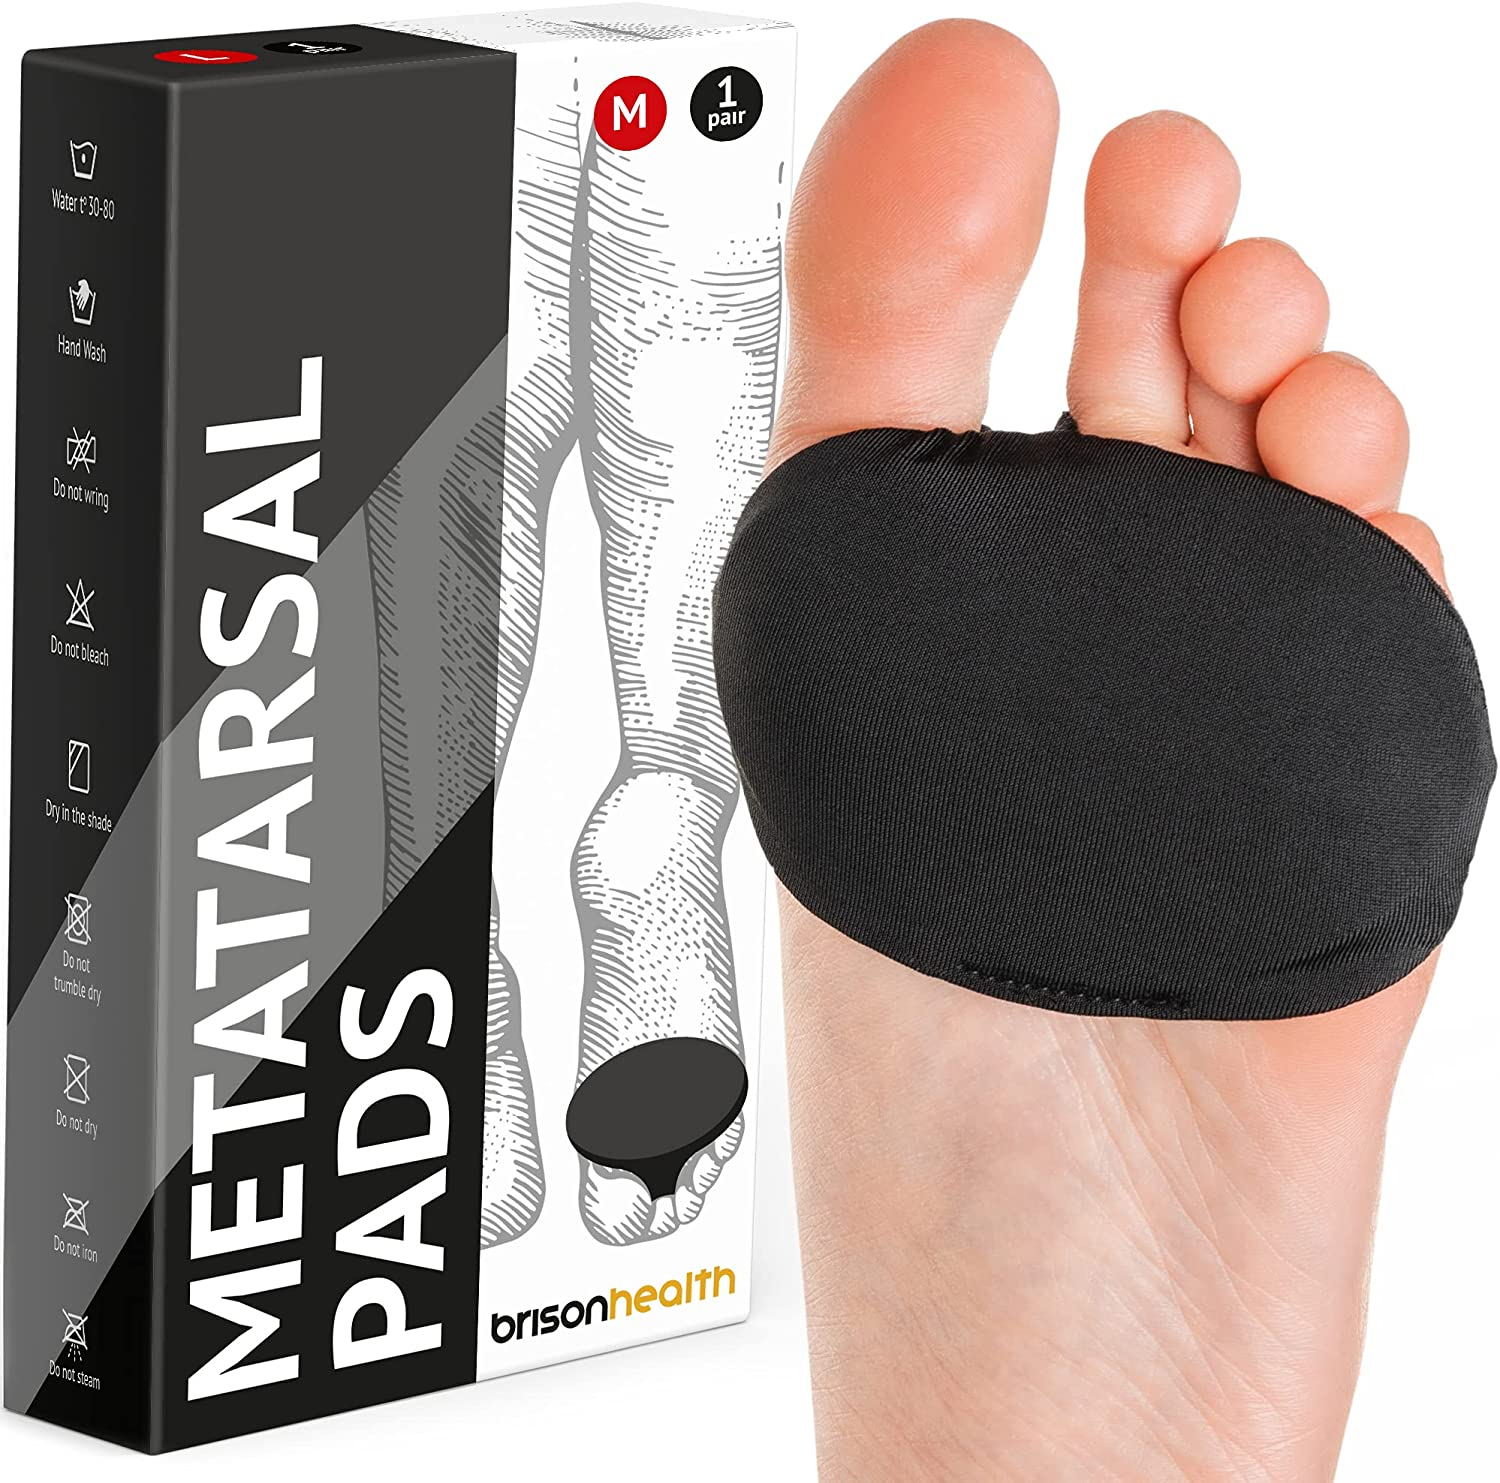 Fabric free shipping Metatarsal Pads - Ball of Se Sleeves Cushion Burning Foot Sale special price